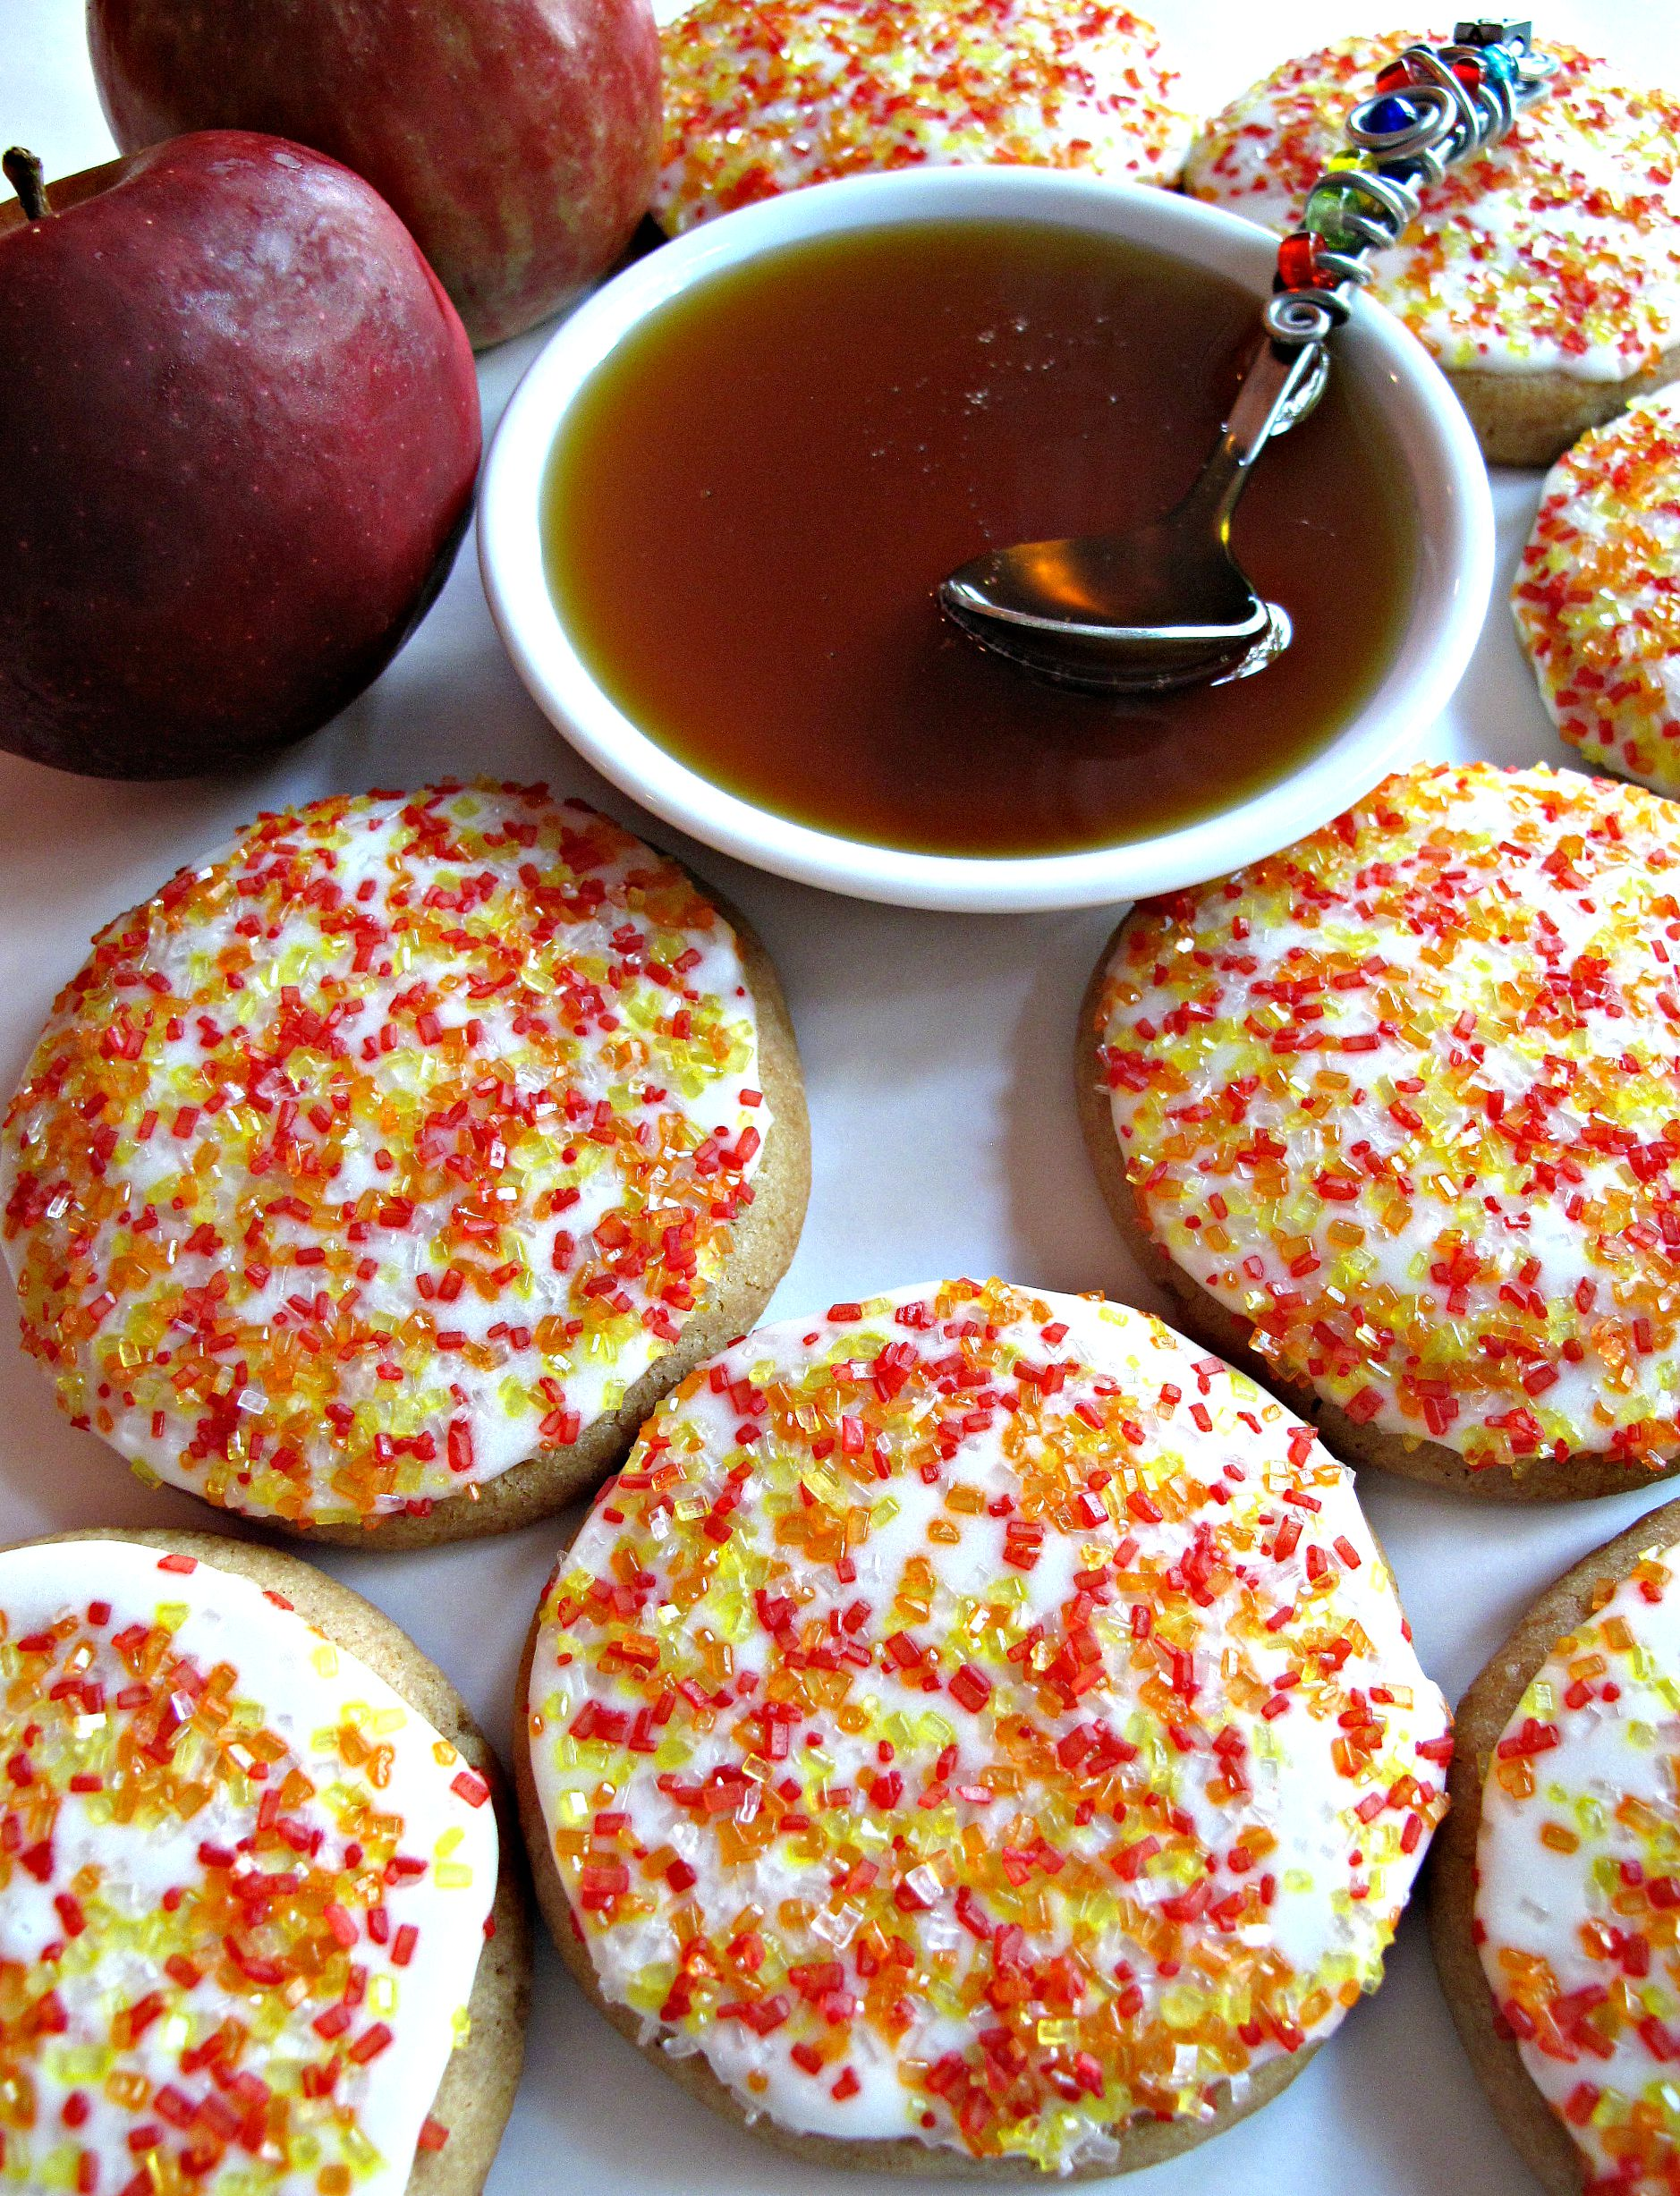 Iced cookies with yellow and red sugar sprinkles with a honey bowl and two apples.